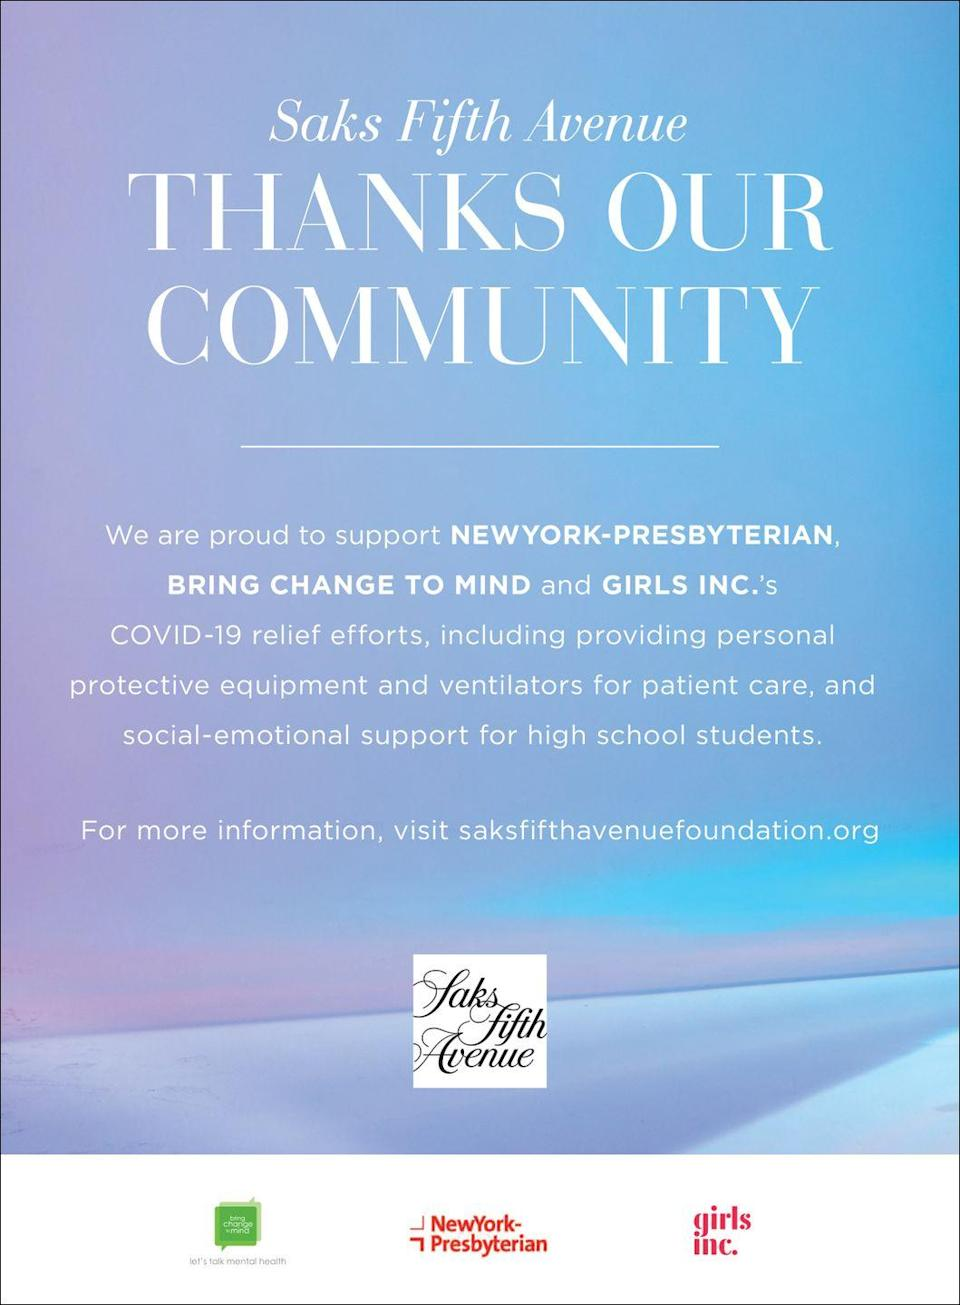 """<p>Saks Fifth Avenue thanks our community. </p><p>We are proud to support New York-Presbyterian, Bring Change to Mind and Girls Inc.'s COVID-19 relief efforts, including providing personal protective equipment and ventilators for patient care, and social-emotional support for high school students.</p><p><em>For more information, visit <a href=""""https://saksfifthavenuefoundation.org/"""" rel=""""nofollow noopener"""" target=""""_blank"""" data-ylk=""""slk:here."""" class=""""link rapid-noclick-resp"""">here. </a></em></p>"""